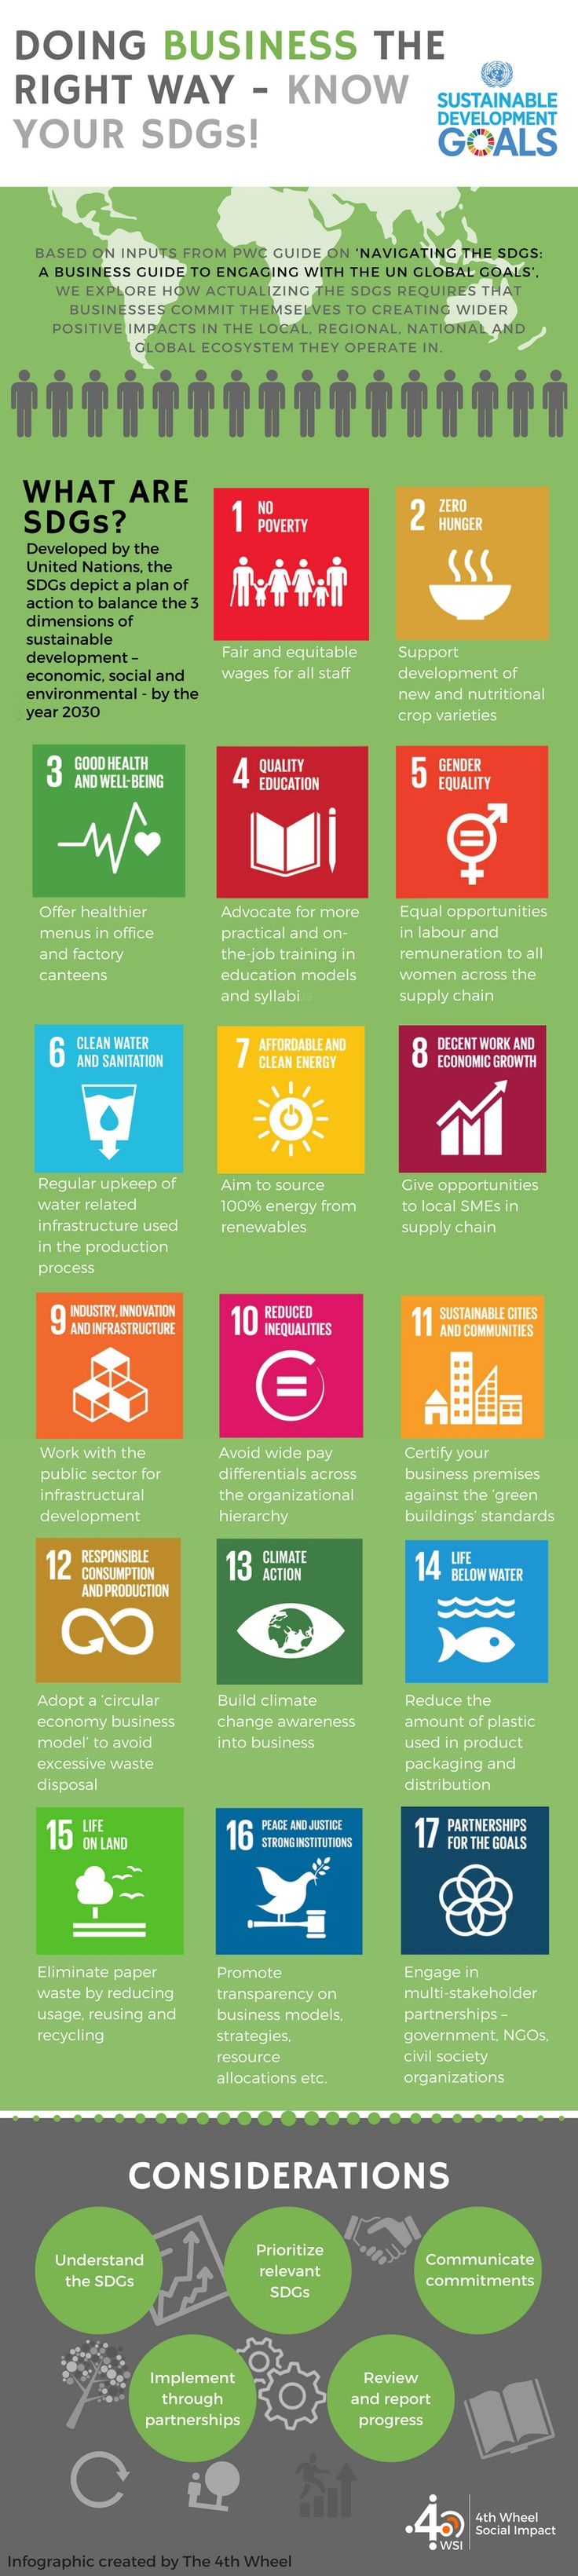 """Businesses can provide essential solutions and resources that put our world on a more sustainable path."" -Ban Ki-Moon, former United Nations Secretary-General 